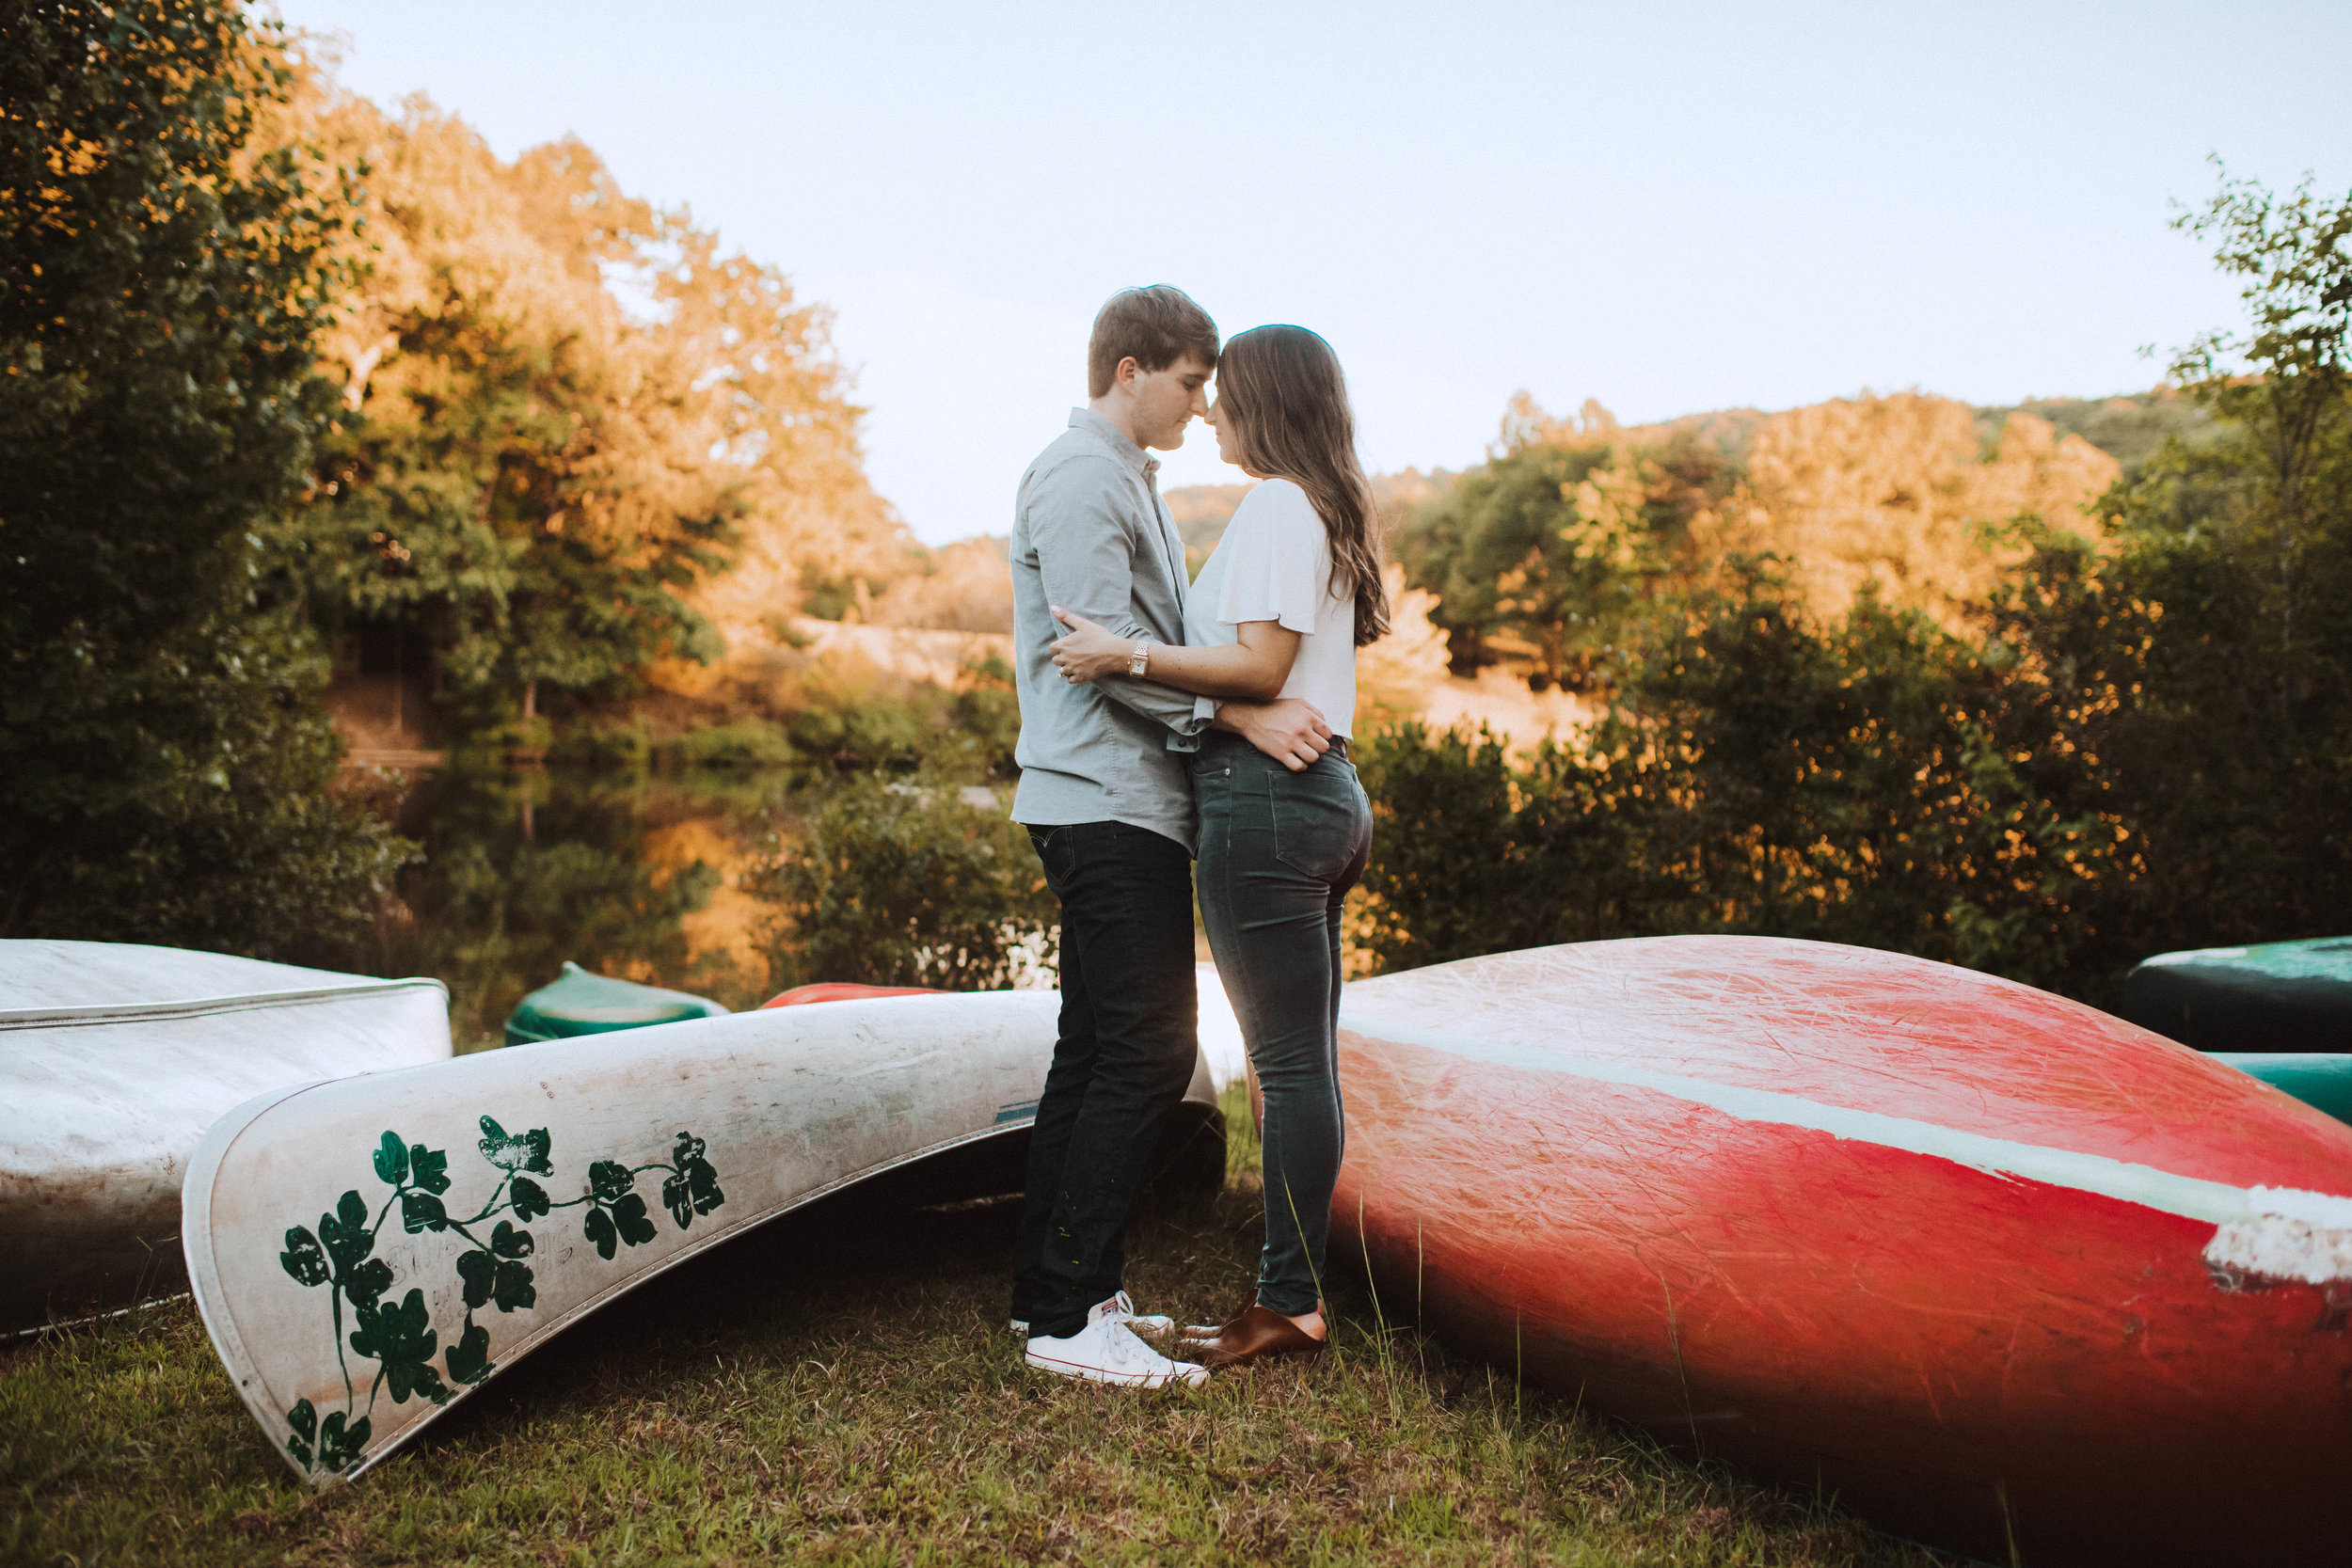 san francisco oakland bay area california sf atlanta georgia camp wes anderson moonrise kingdom inspired canoe engagement nontraditional wedding photographer -266.jpg